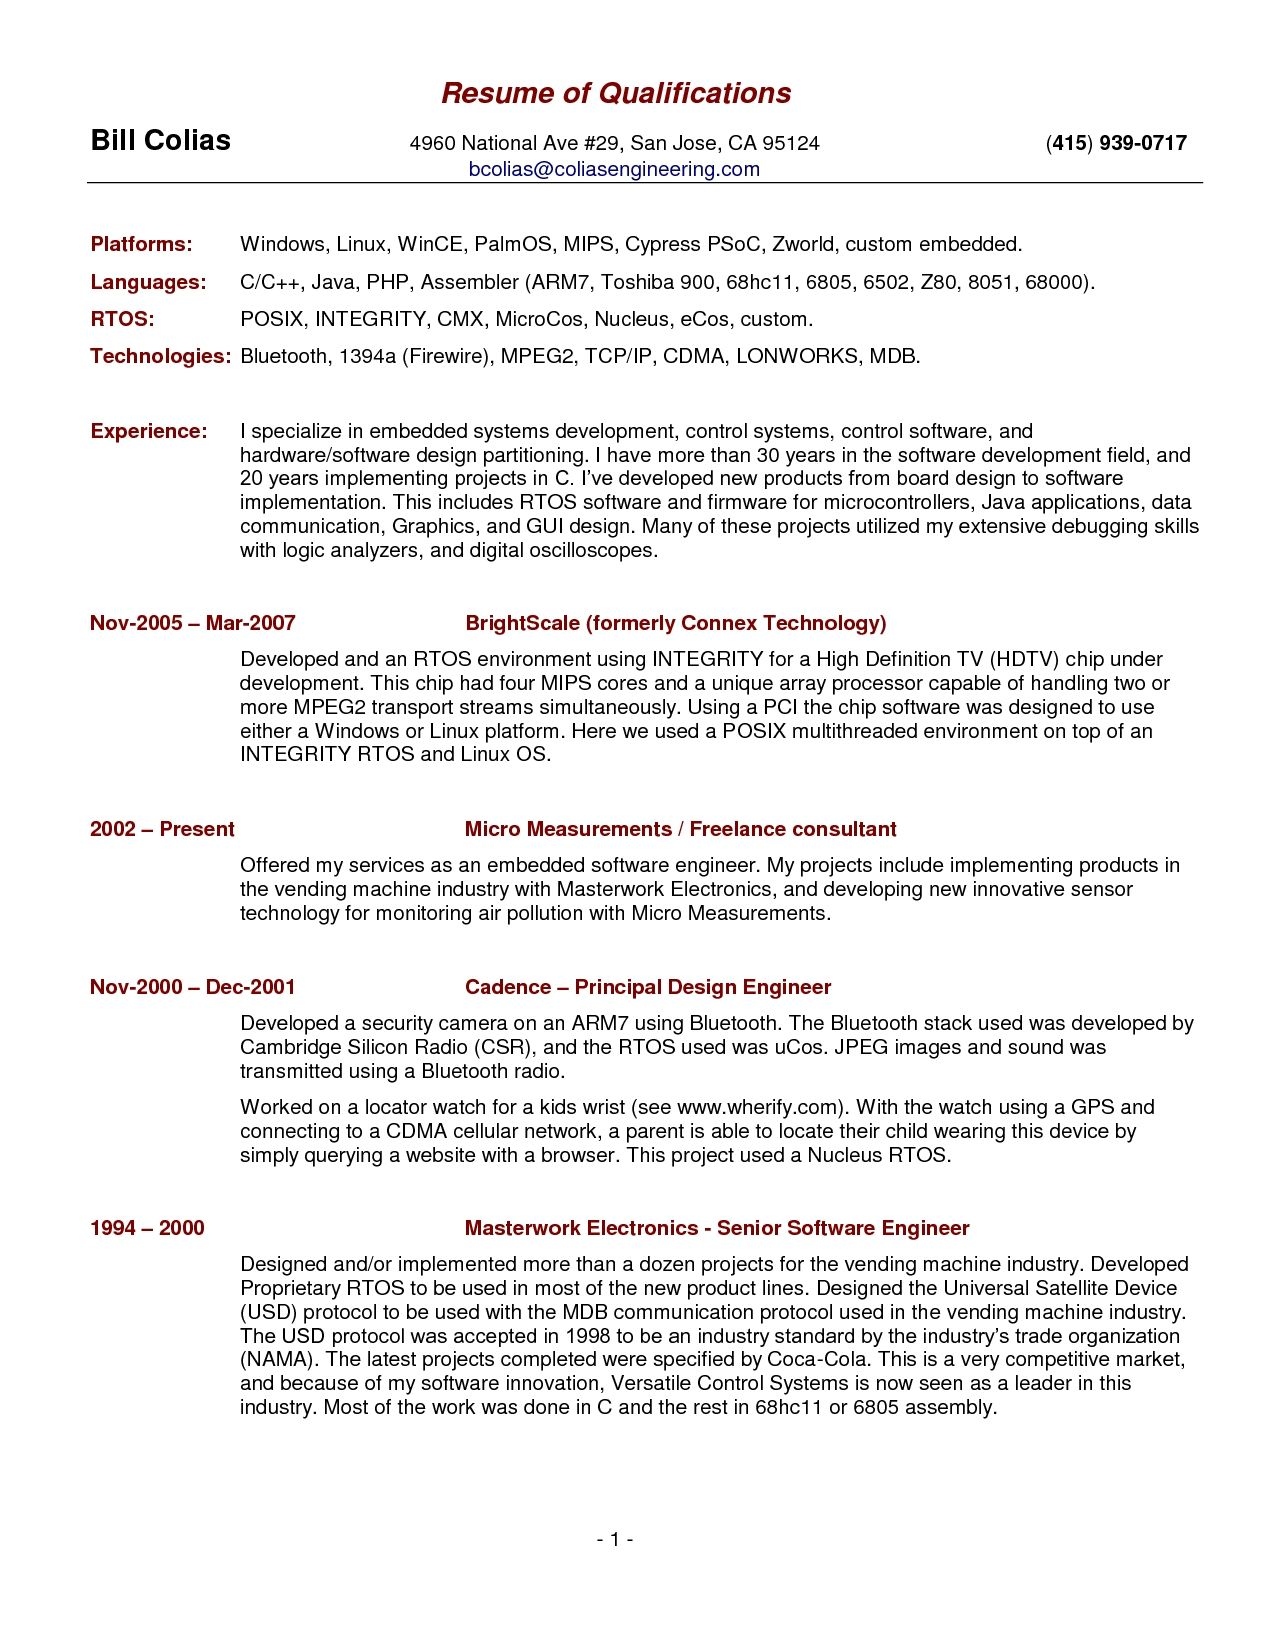 qualifications resume templates pinterest resume examples